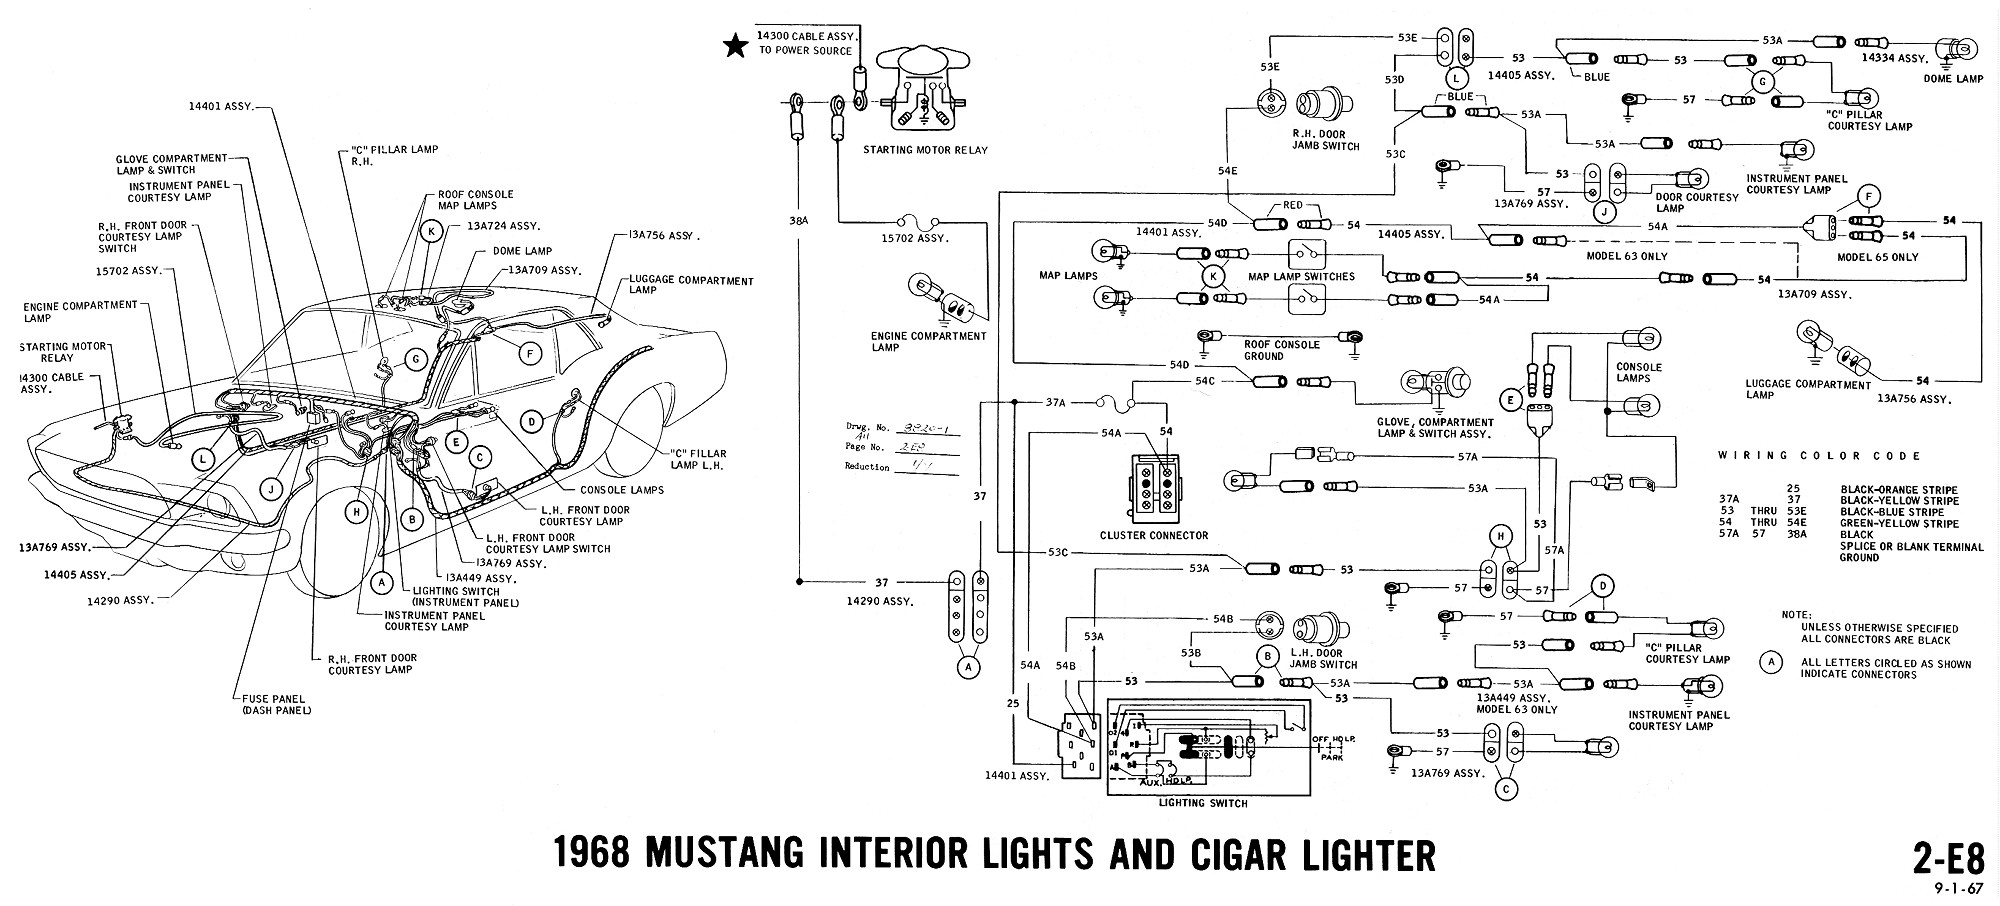 1968 mustang wiring diagrams and vacuum schematics wiring harness schematic for ps906025 wiring harness schematic for 2005 silverado